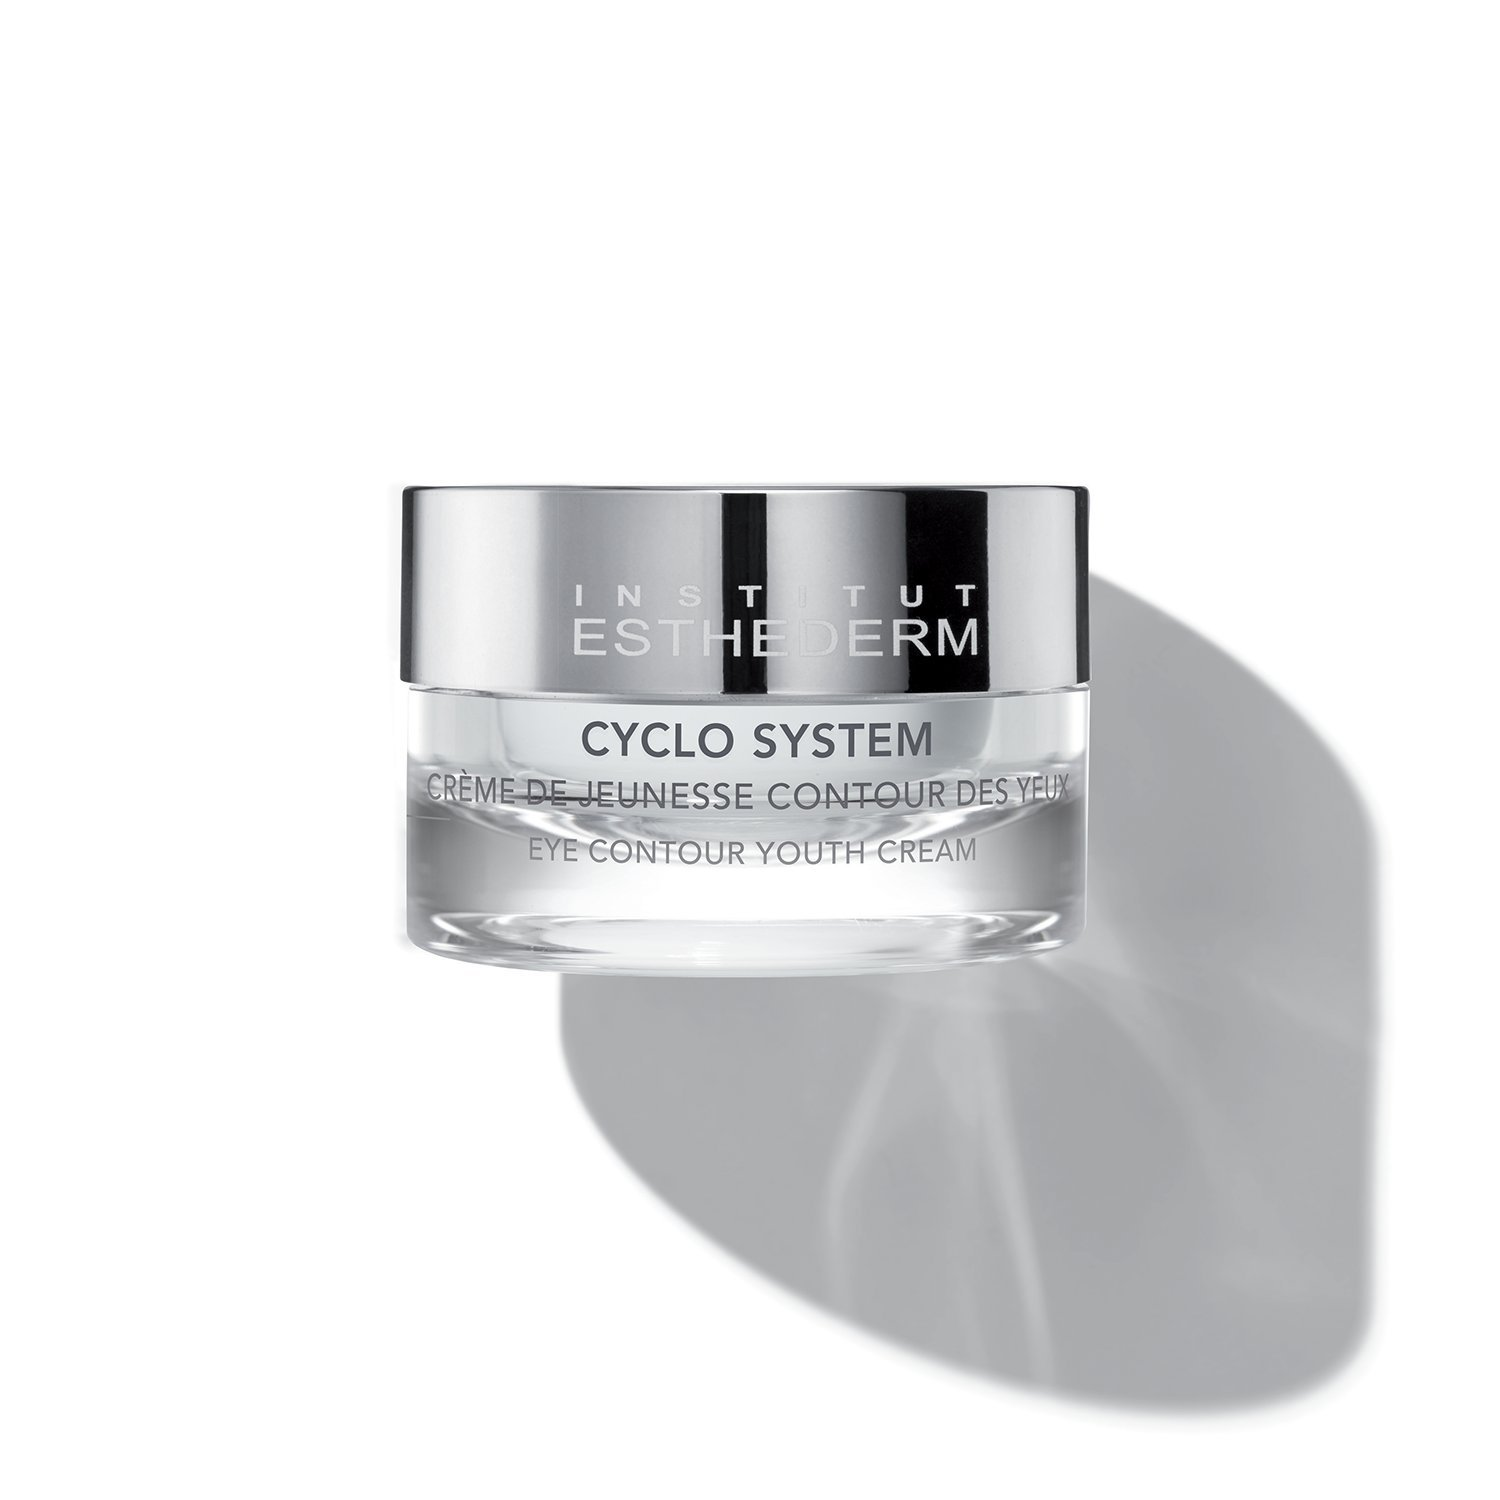 Institut Esthederm Cyclo System Eye Contour Youth Cream, densifying and smoothing eye contour treatment - 0.5oz